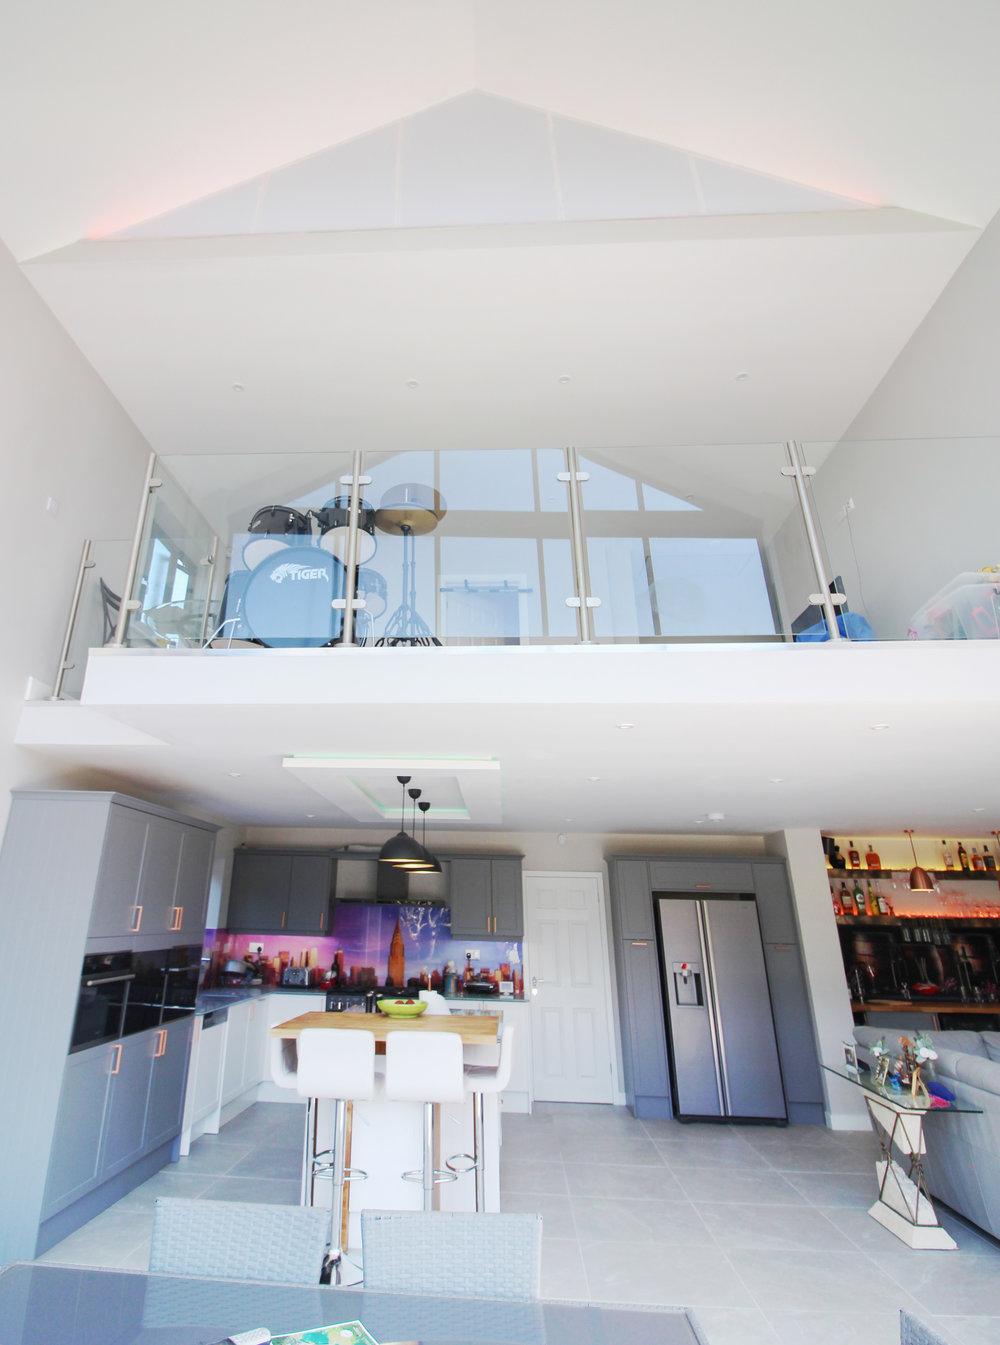 The view from the backdoor... - The upper level mezzanine floats effortlessly over the kitchen area. This creates a bright and friendly atmosphere when entering the new space.